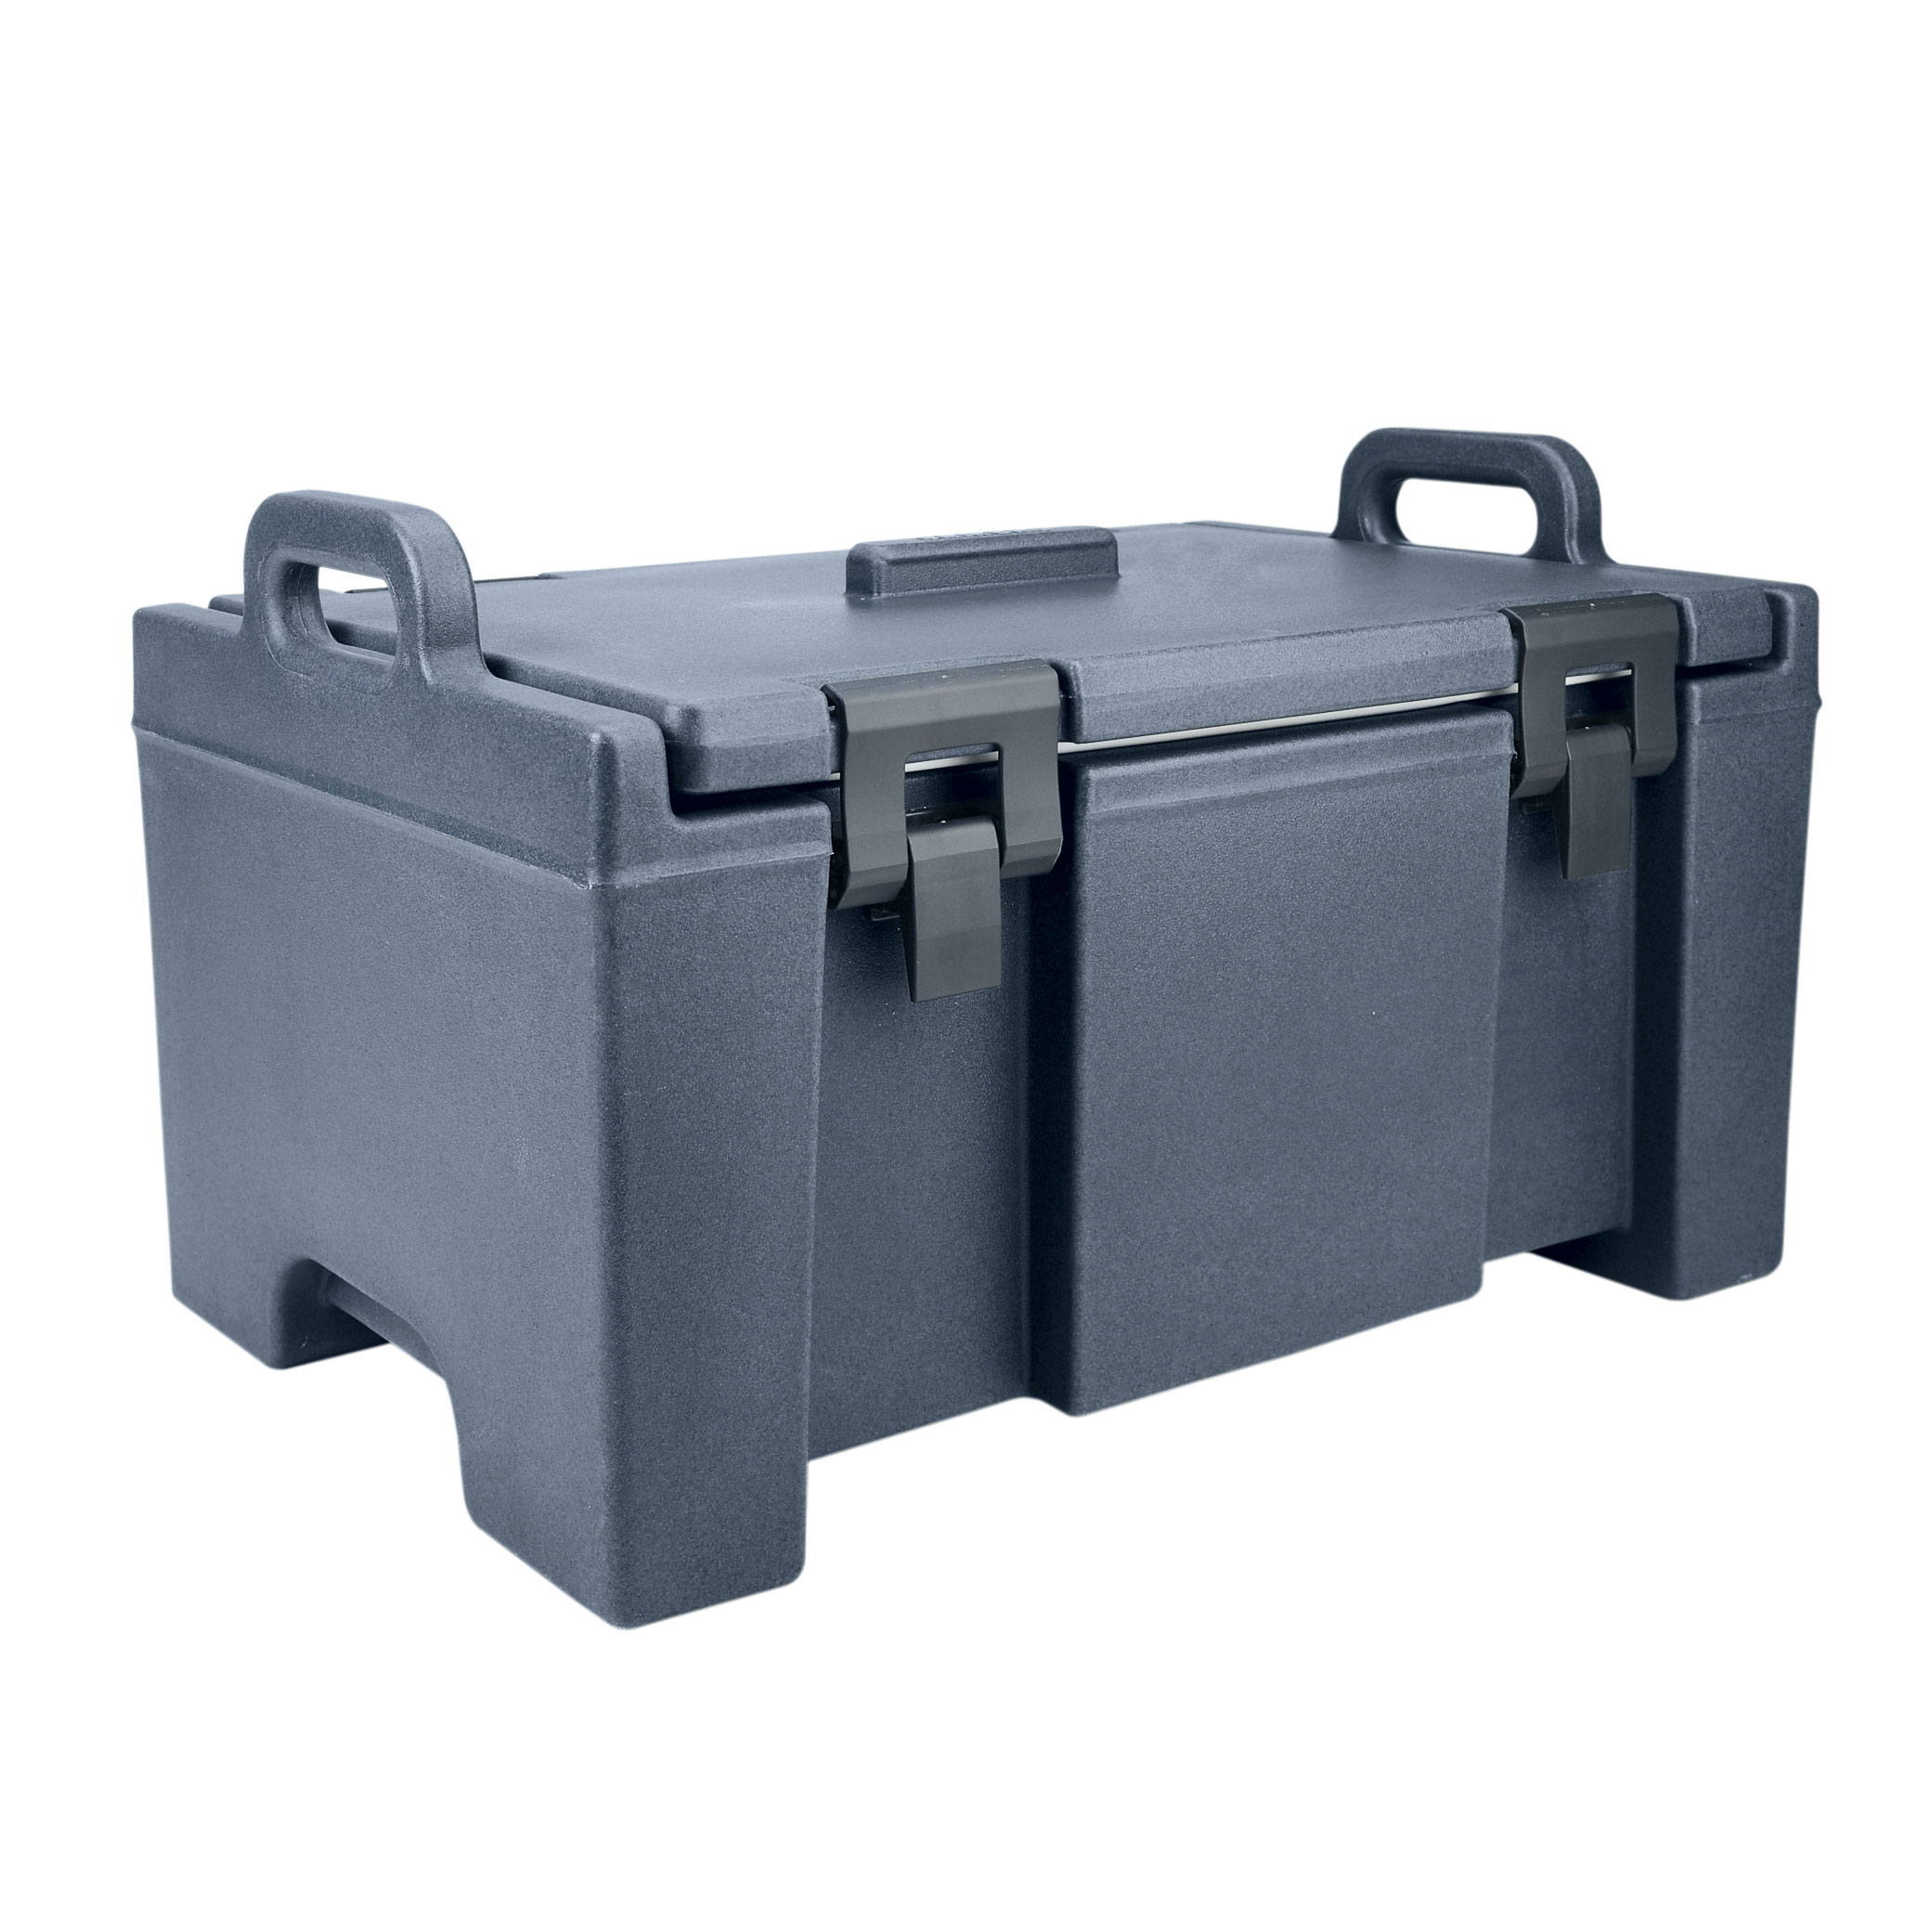 Cambro UPC100191 food carrier, insulated plastic